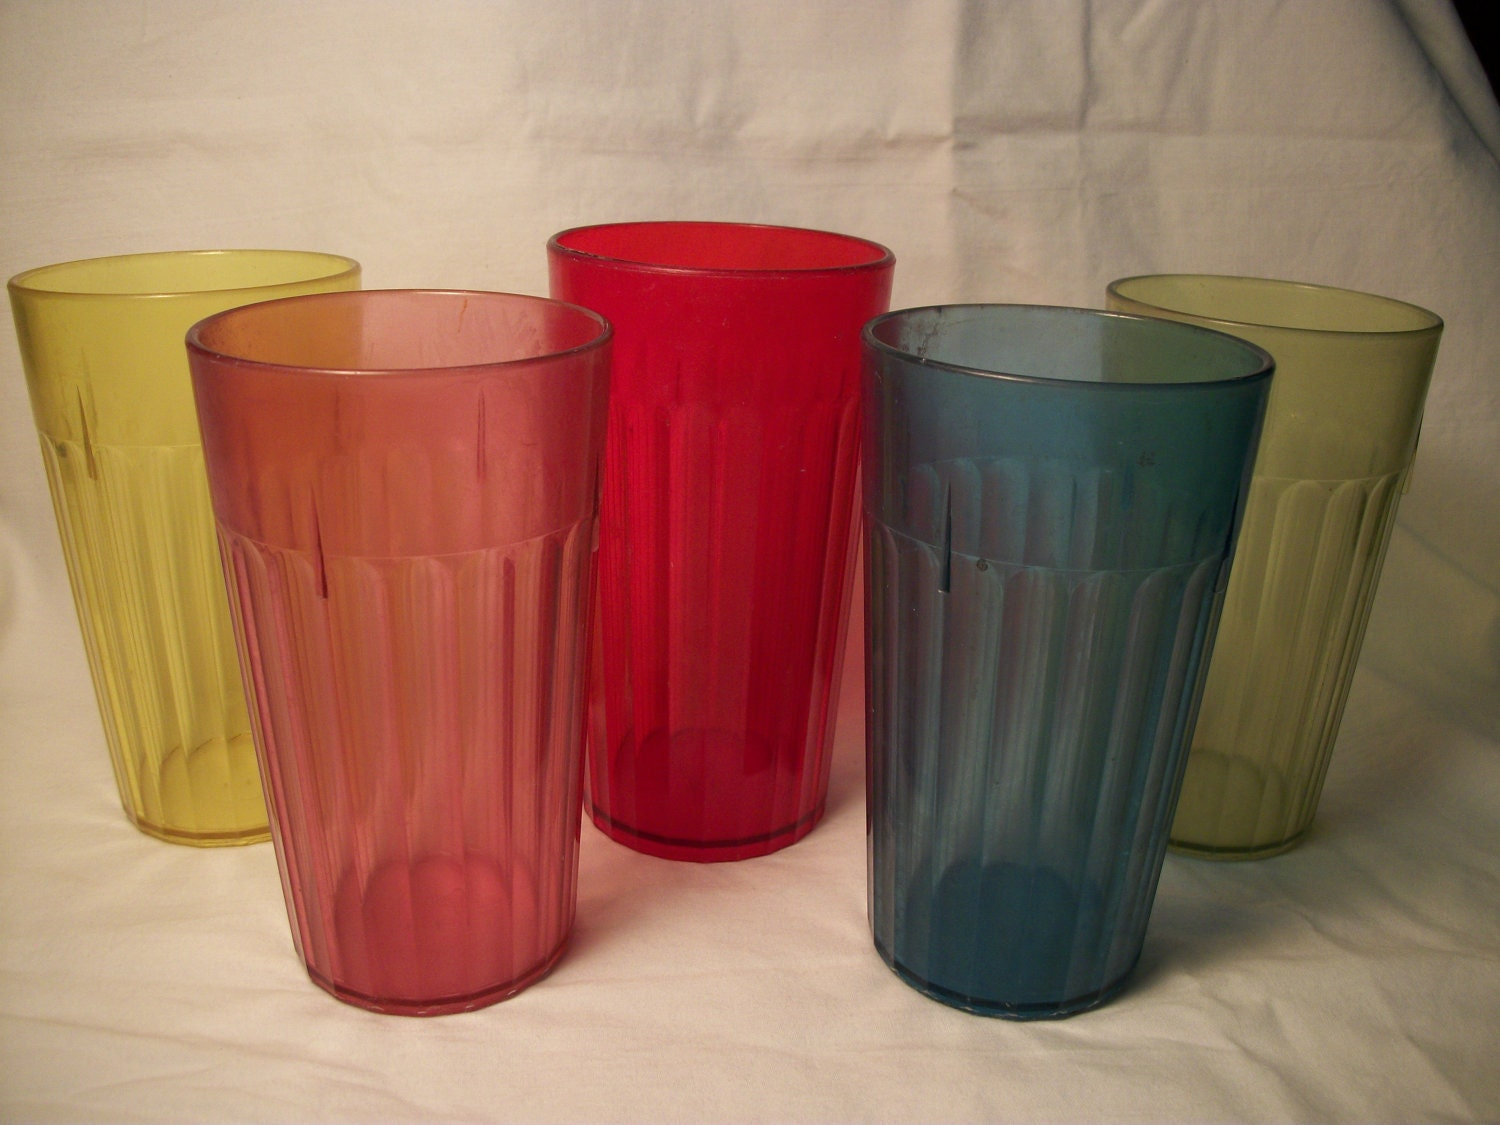 Plastic cups that look like glass